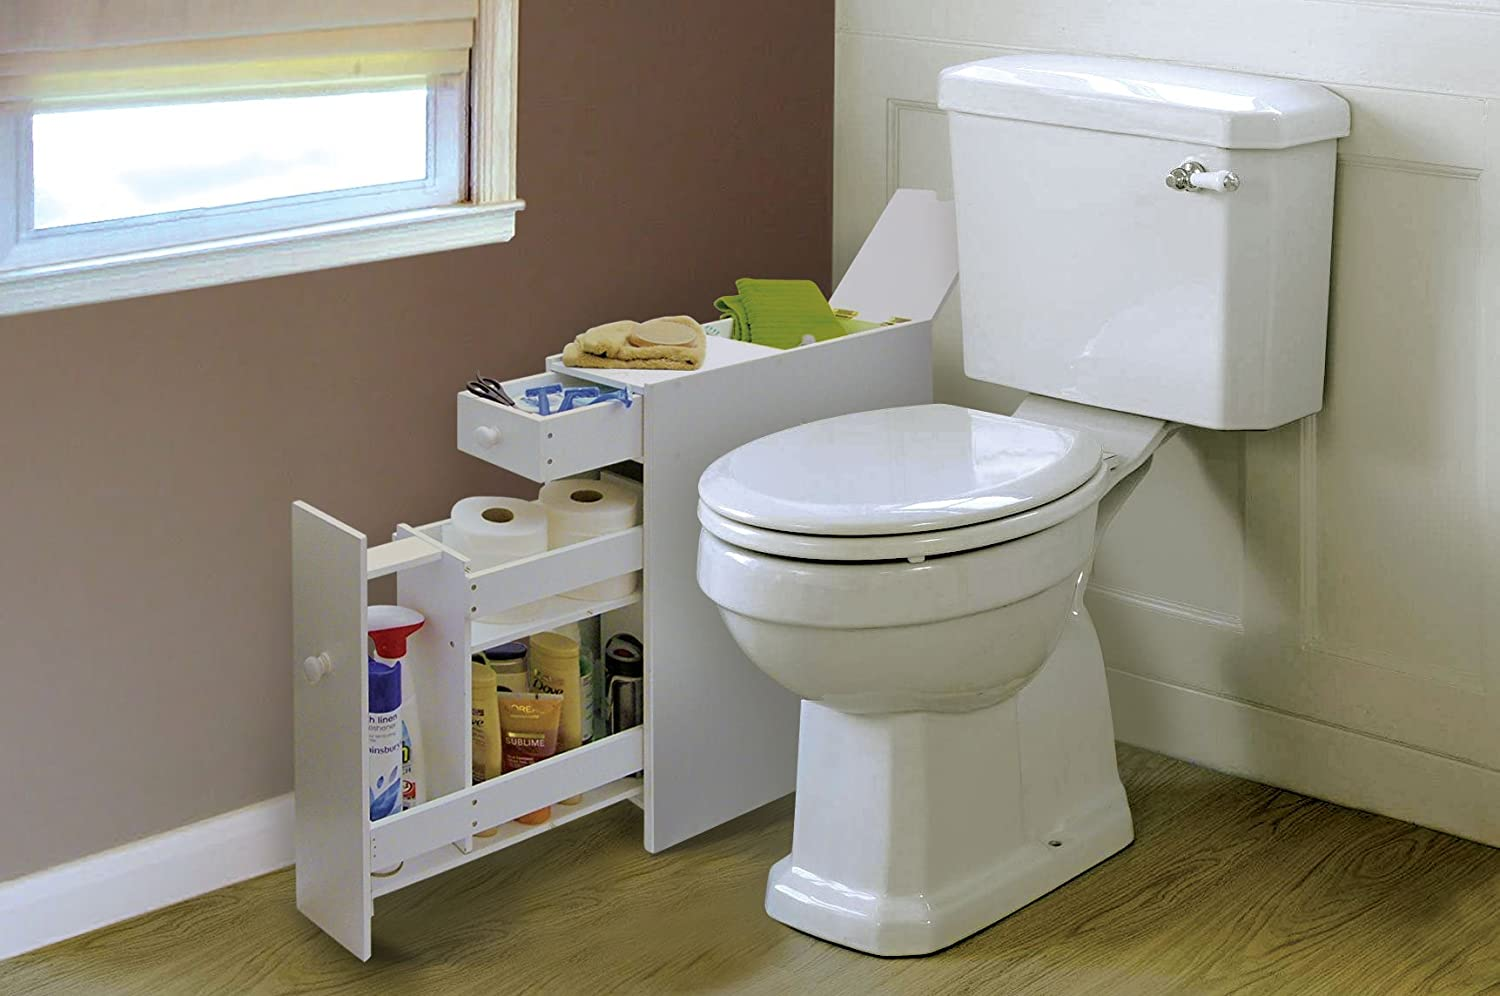 Meuble toilette gain de place - Cuisine gain de place ...